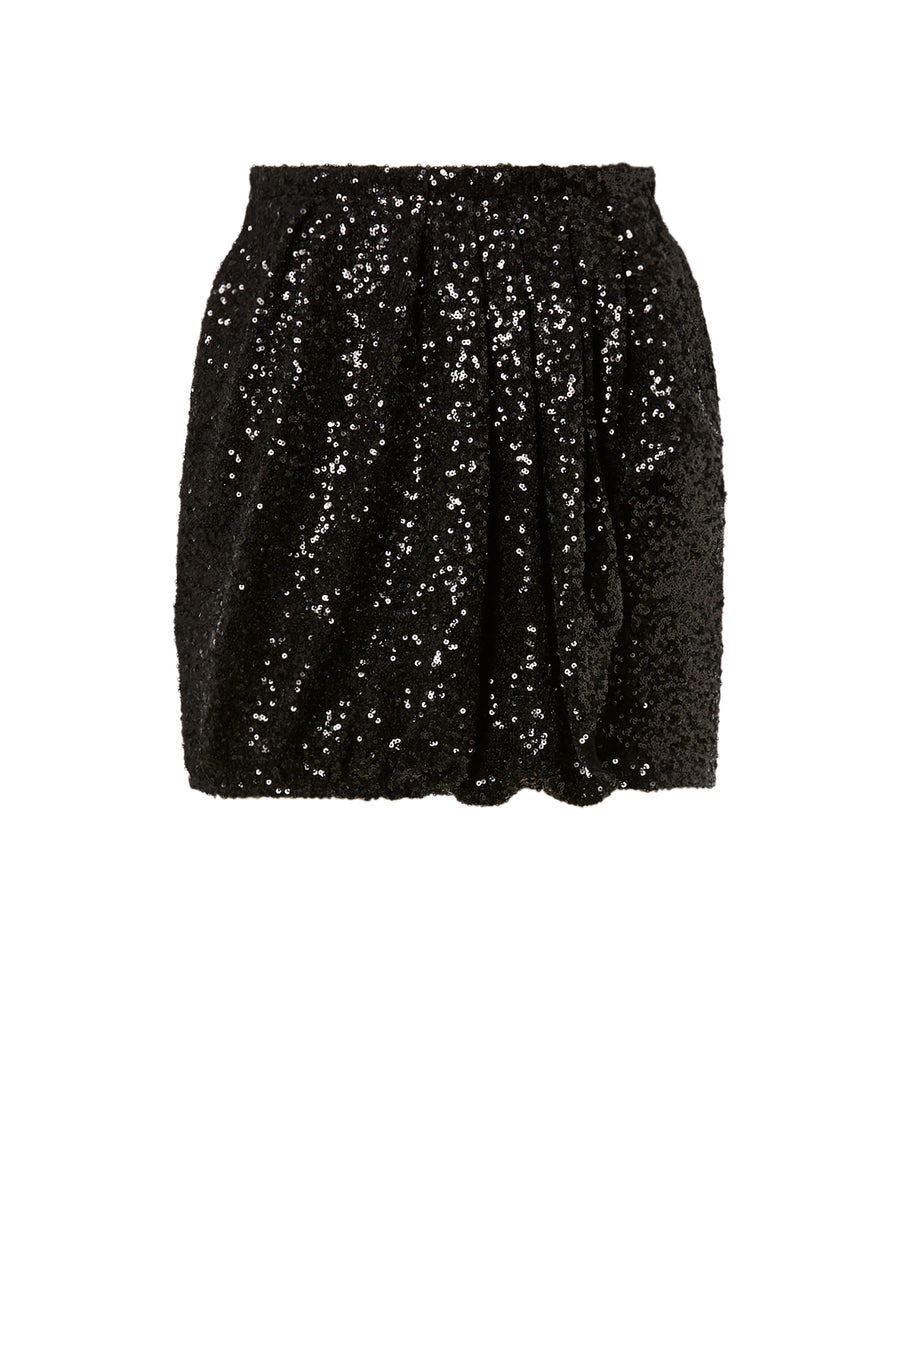 Sequin Pleat Skirt, drape front frill details, hidden zip closure at back and practical pockets, color black